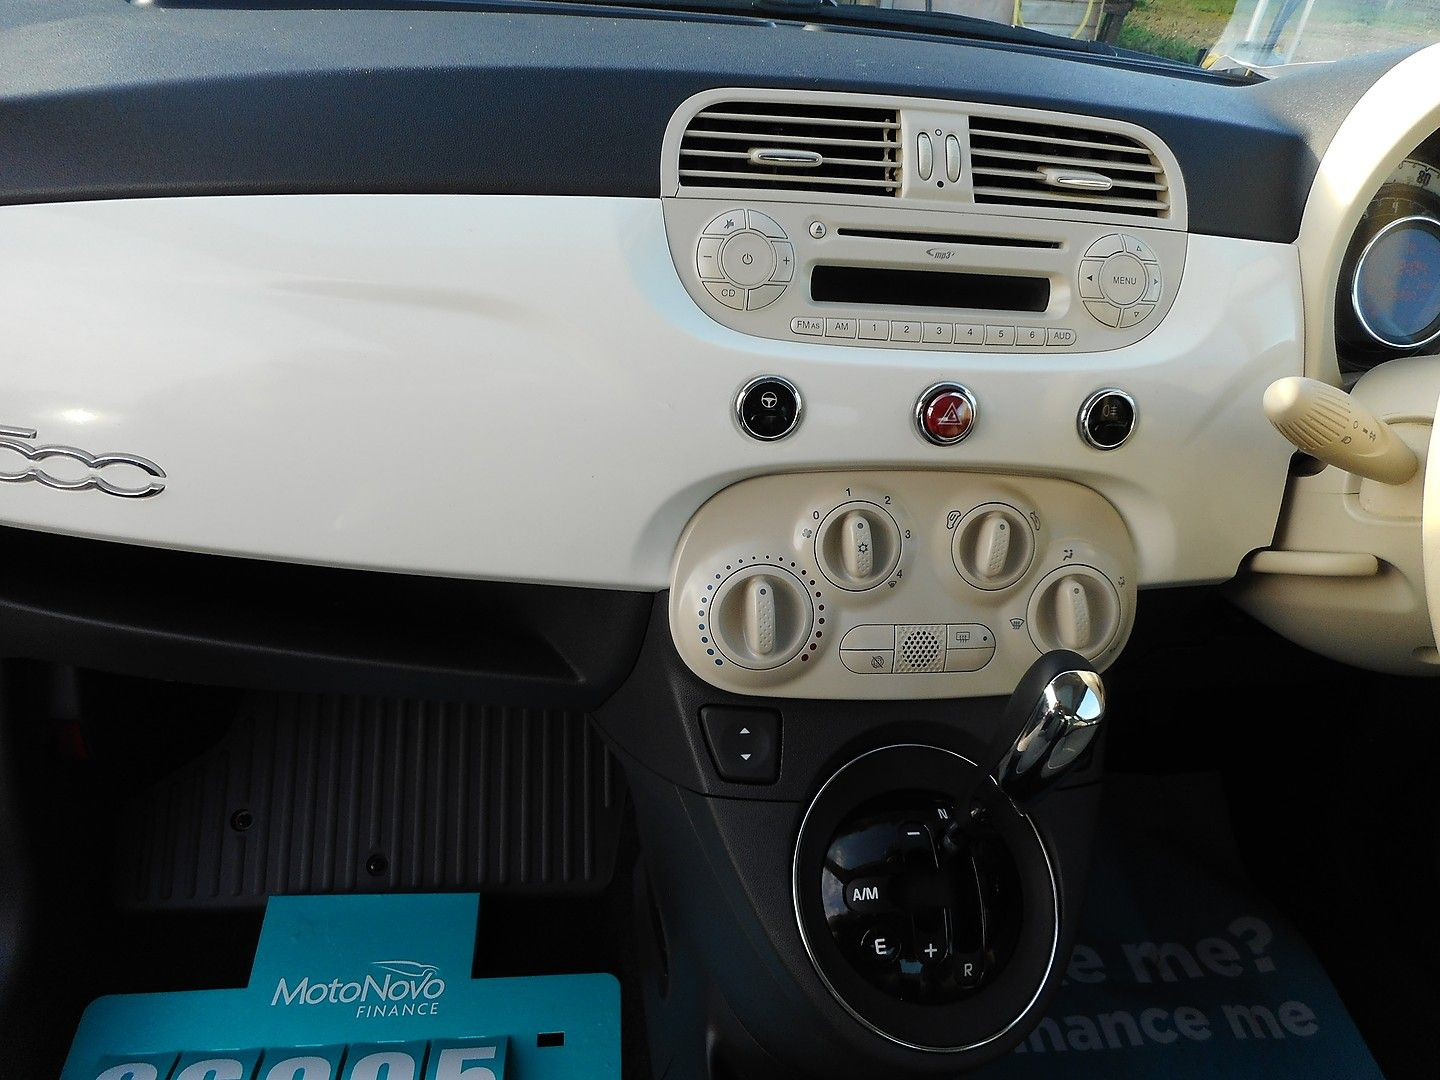 FIAT 500 1.2i Lounge S/S automatic (2013) - Picture 18